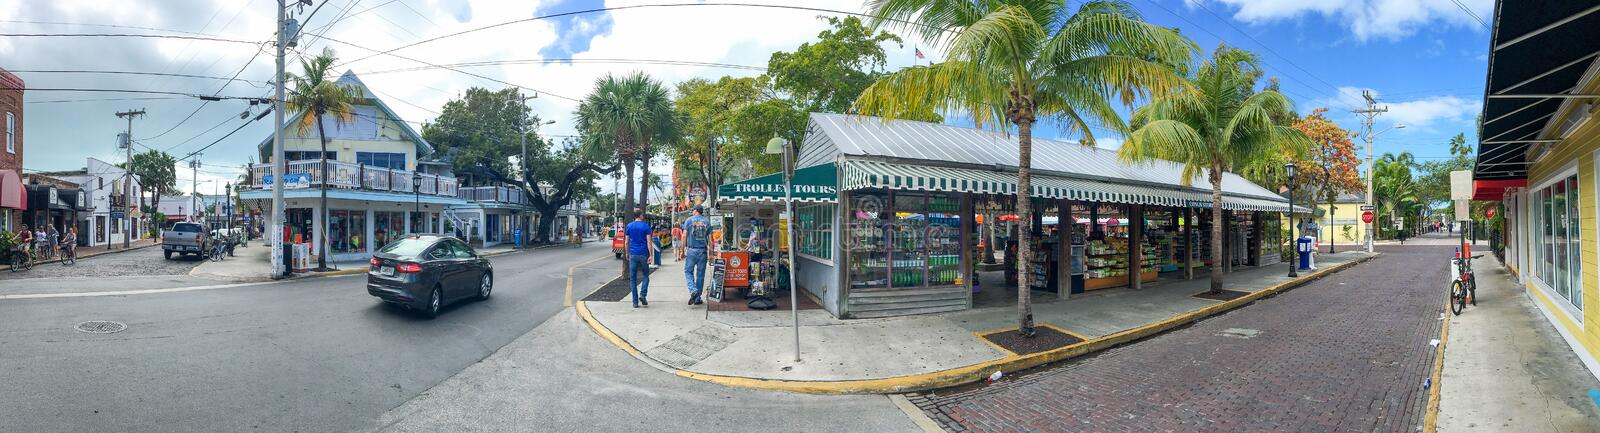 KEY WEST, FL - FEBRUARY 2016: Tourists along city streets, panoramic view. Key West is a major tourist destination in Florida.  royalty free stock photos